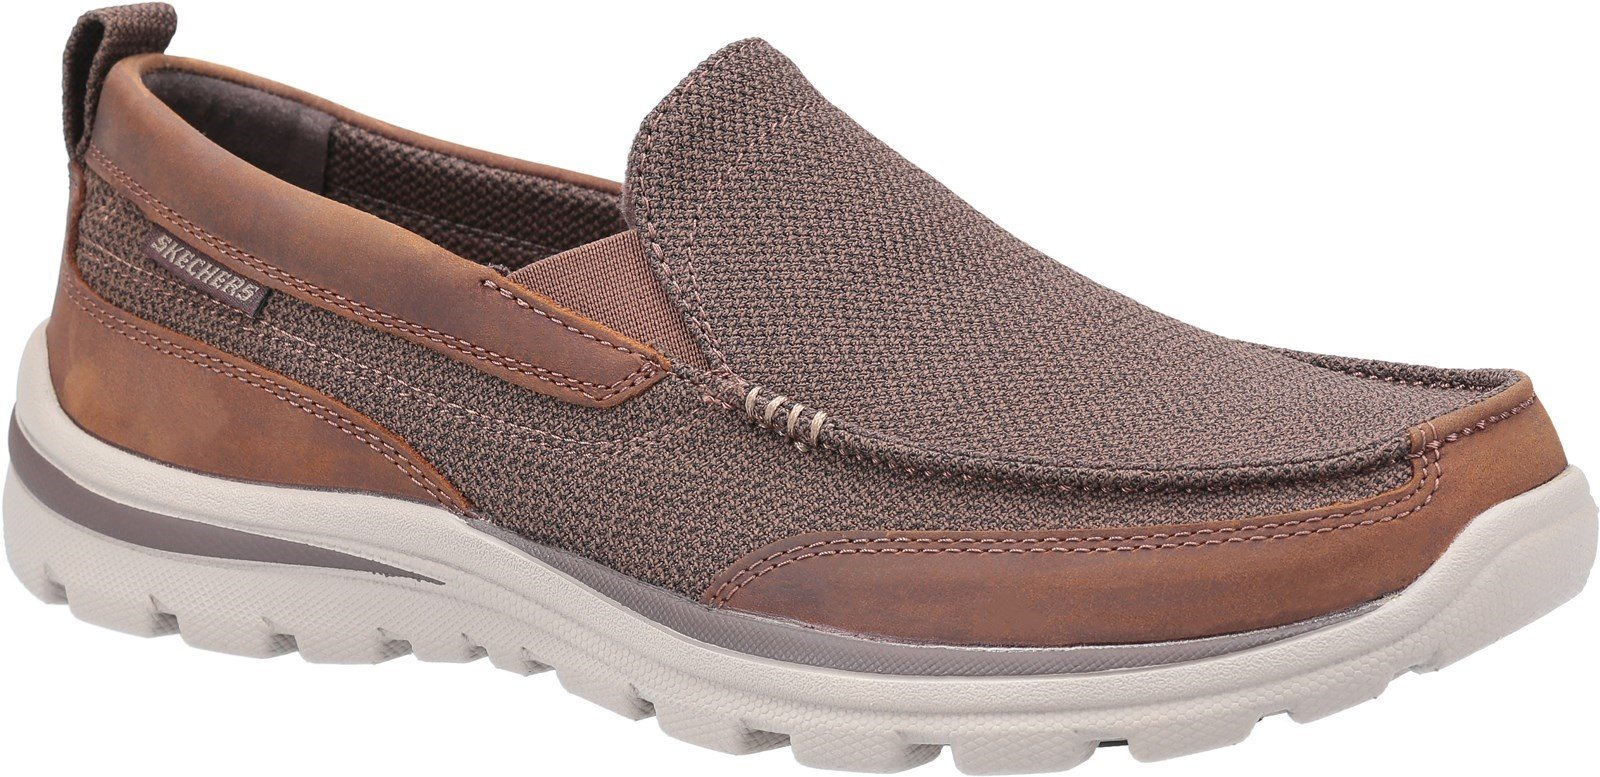 Skechers Unisex Superior Milford Shoes Brown 23890-52443 - Brown 6